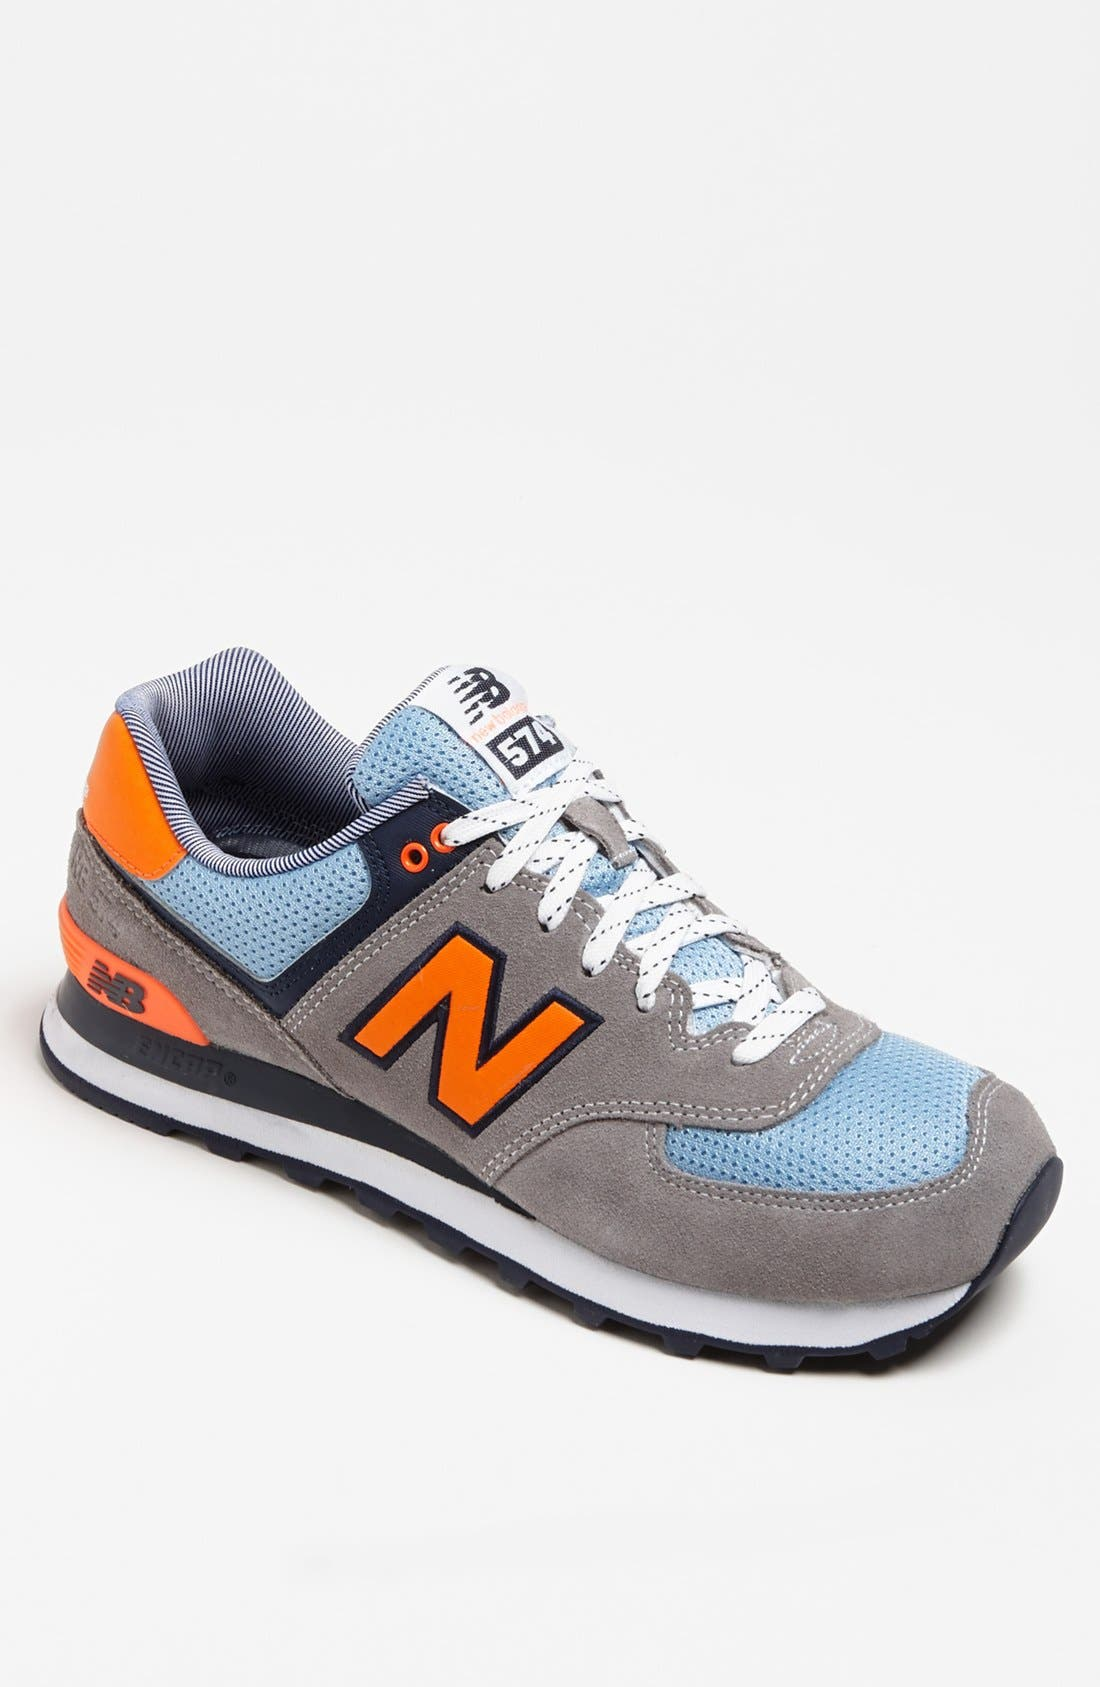 Alternate Image 1 Selected - New Balance '574 Yacht Club' Sneaker (Men)